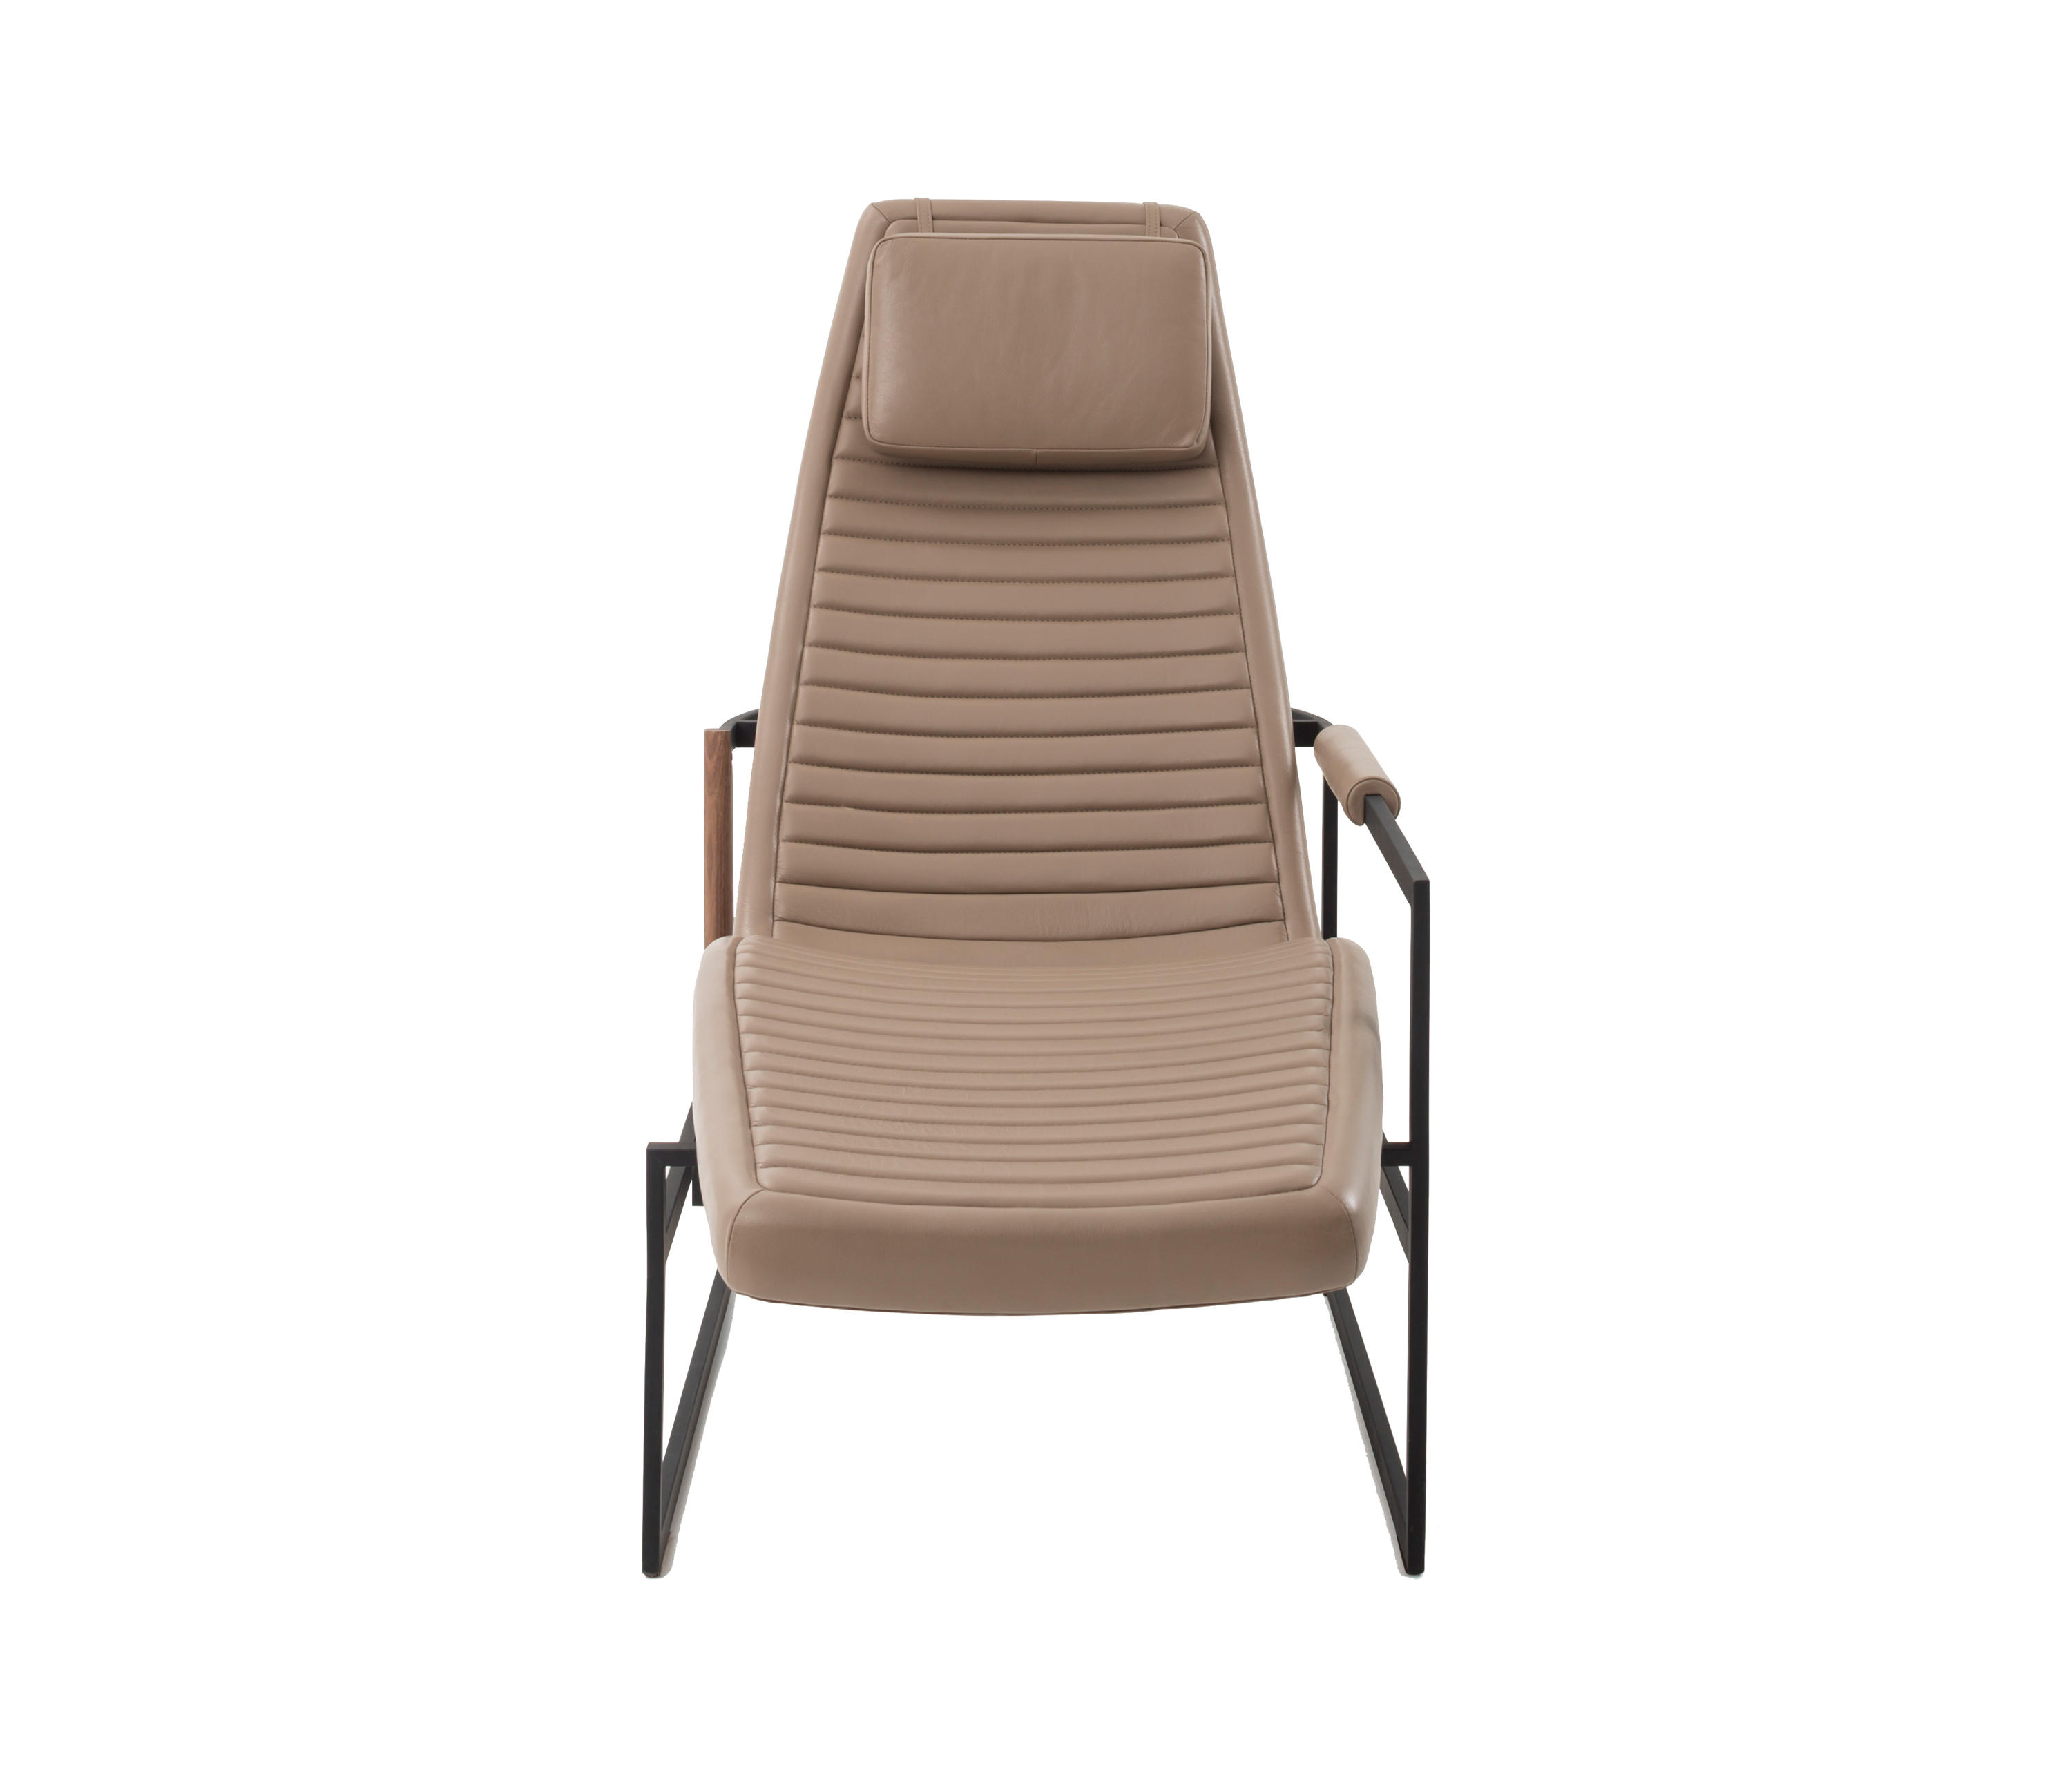 James chaise chaise longues from stellar works architonic for Chaise longue manufacturers